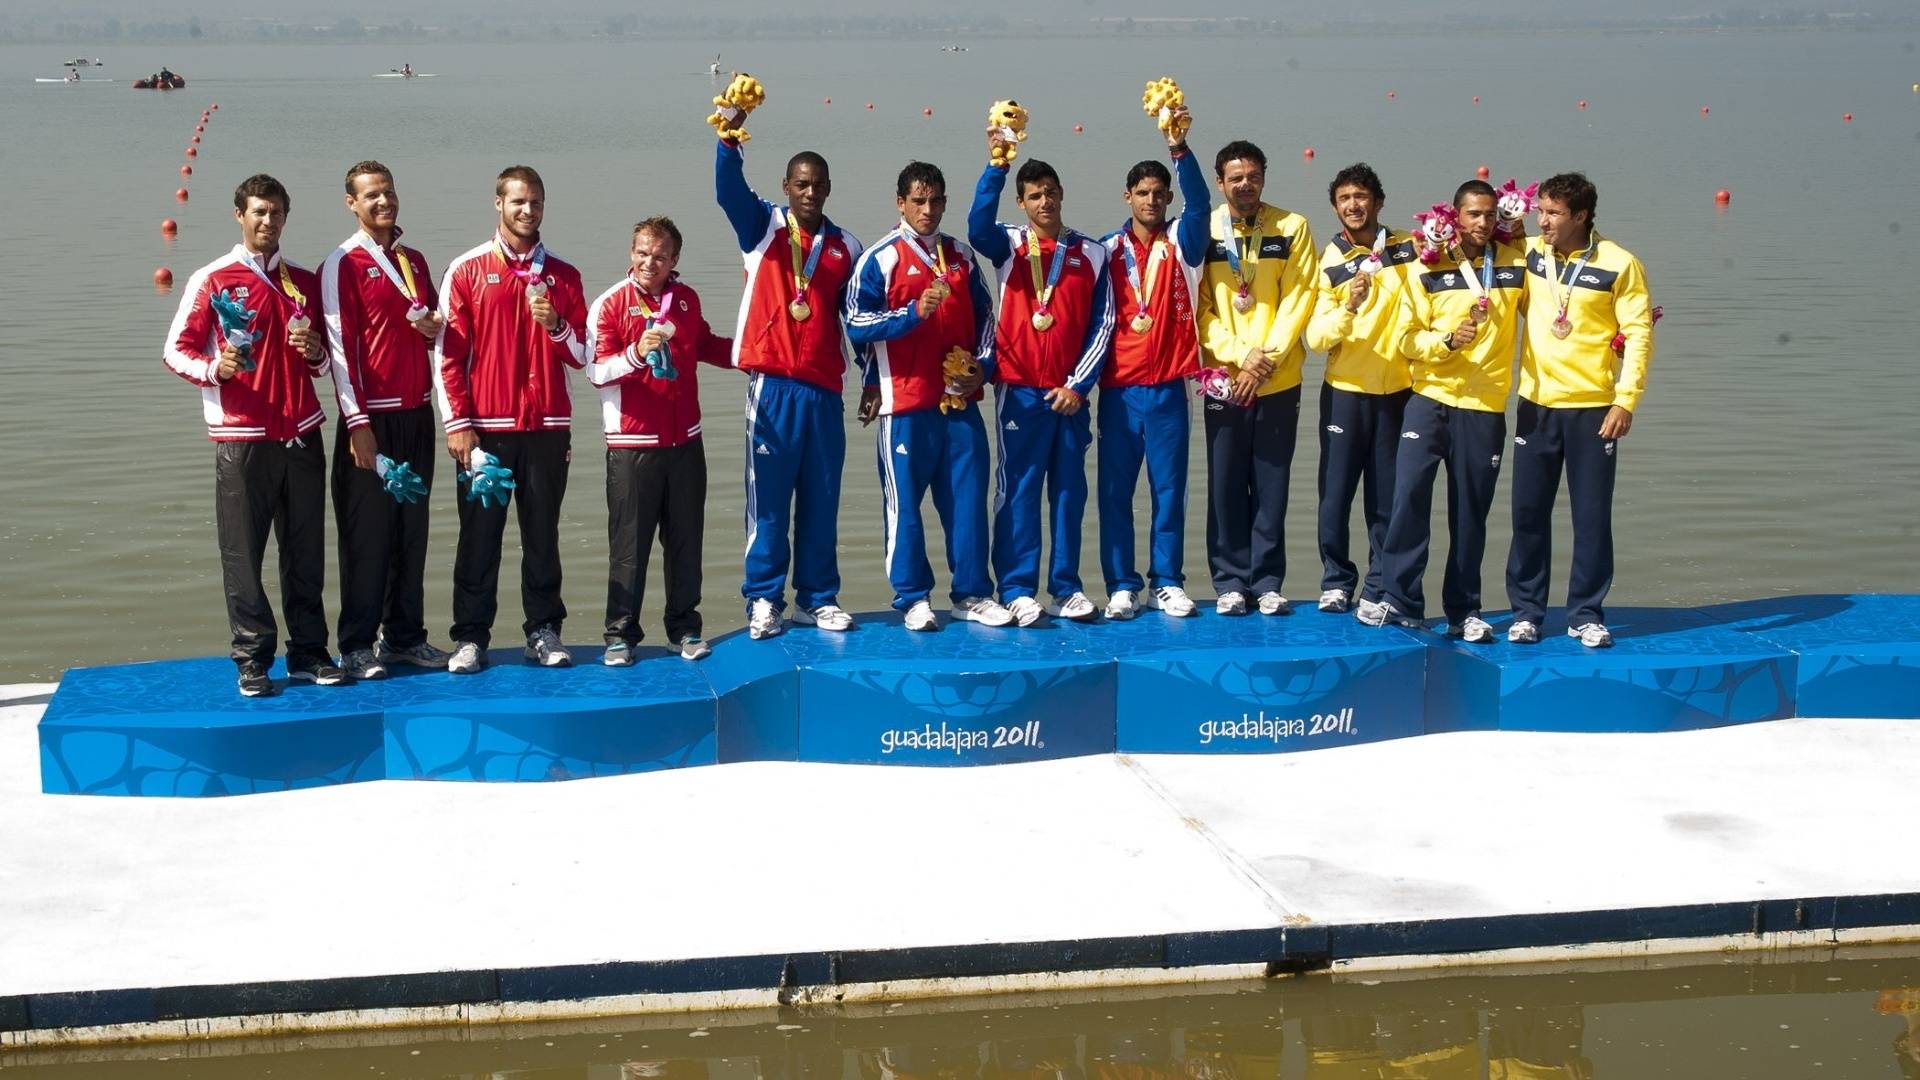 O Brasil ganhou a medalha de bronze no K4 1000 m na canoagem (27/10/2011)